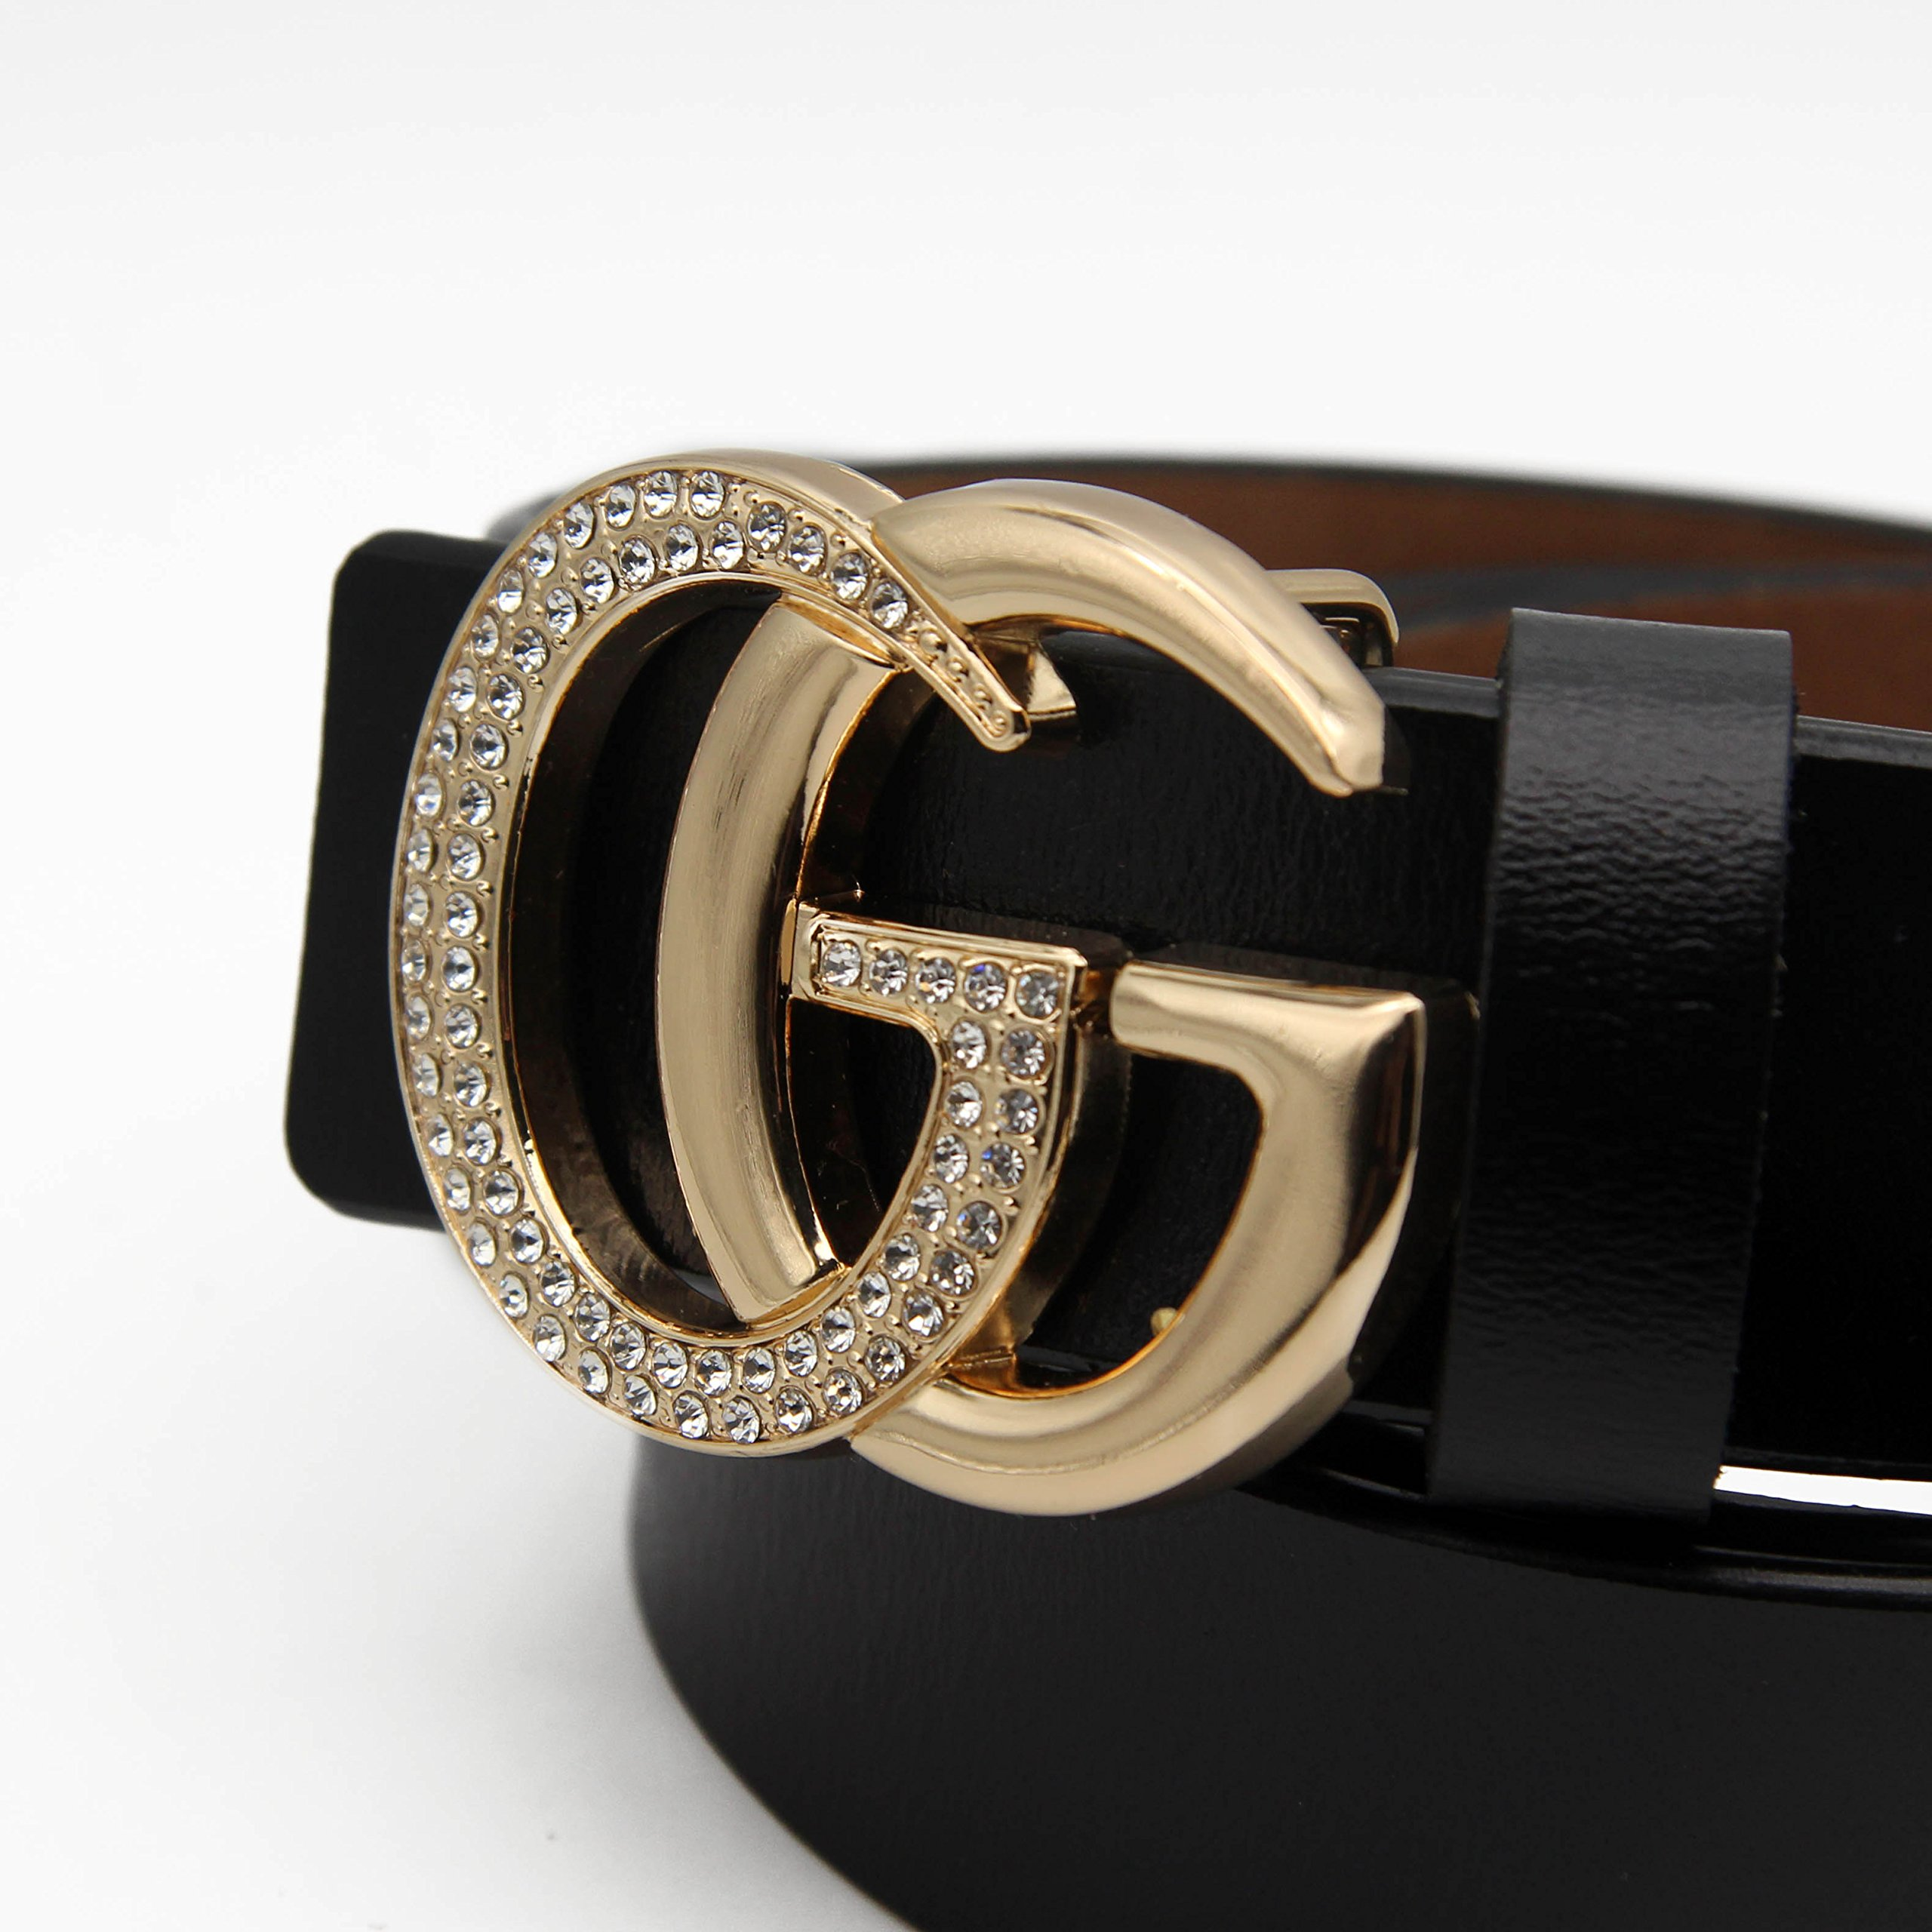 Women's Cowhide Leather Belt Gold Zircon Buckle for Pants Jeans Shorts Ladies Design Genuine Belts for GAGOTE (105cm/41.3'', pants size 26''-30'', Black) by GAGOTE (Image #4)